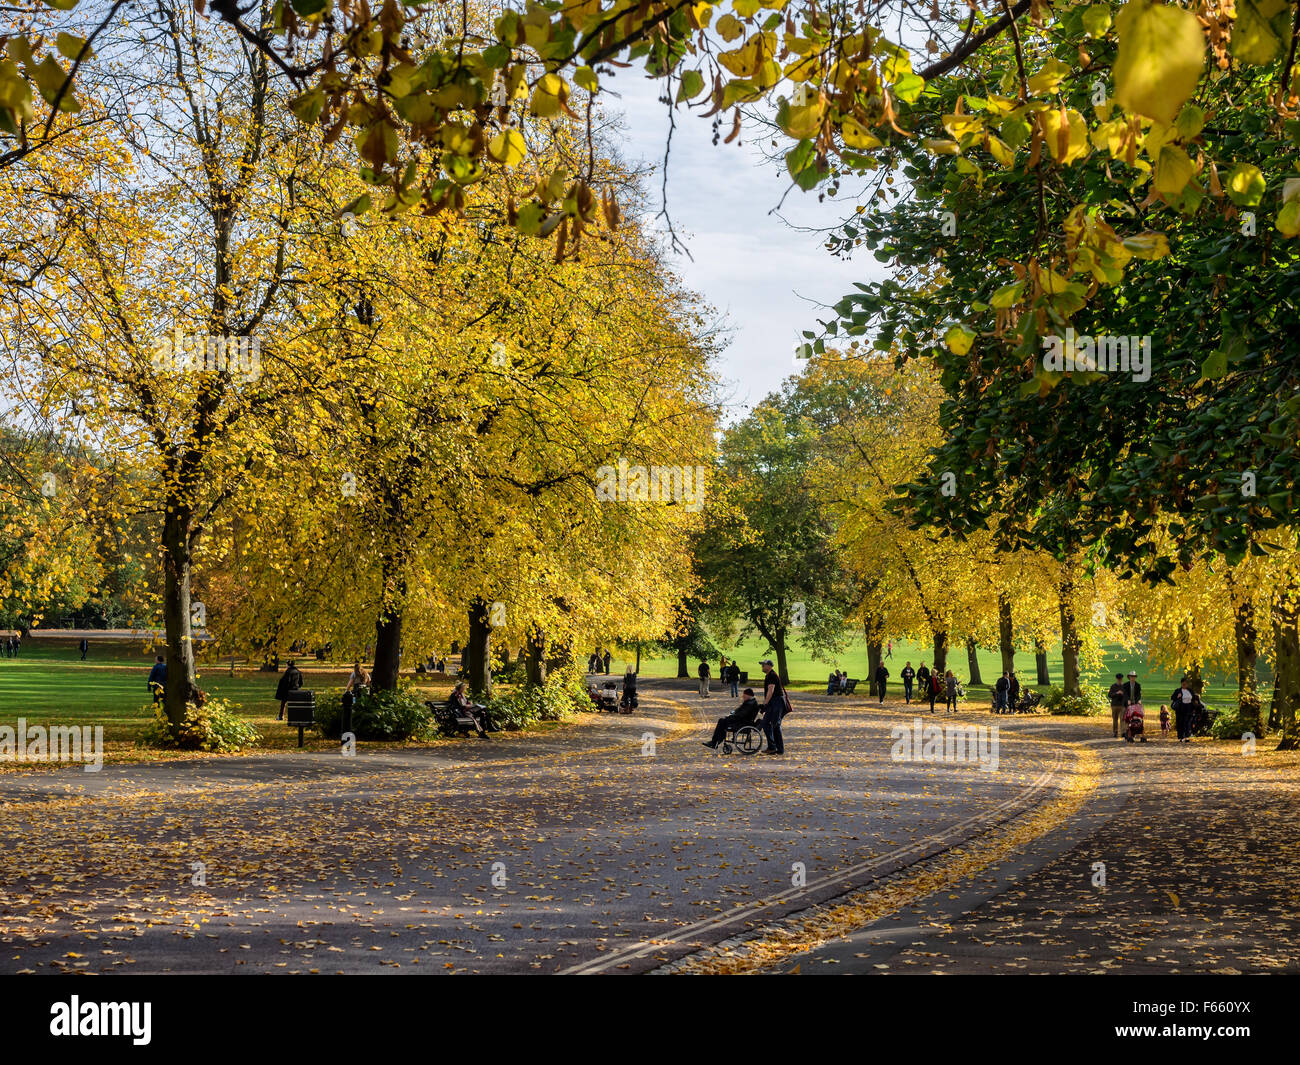 Public park in Greenwich Village, London UK - Stock Image